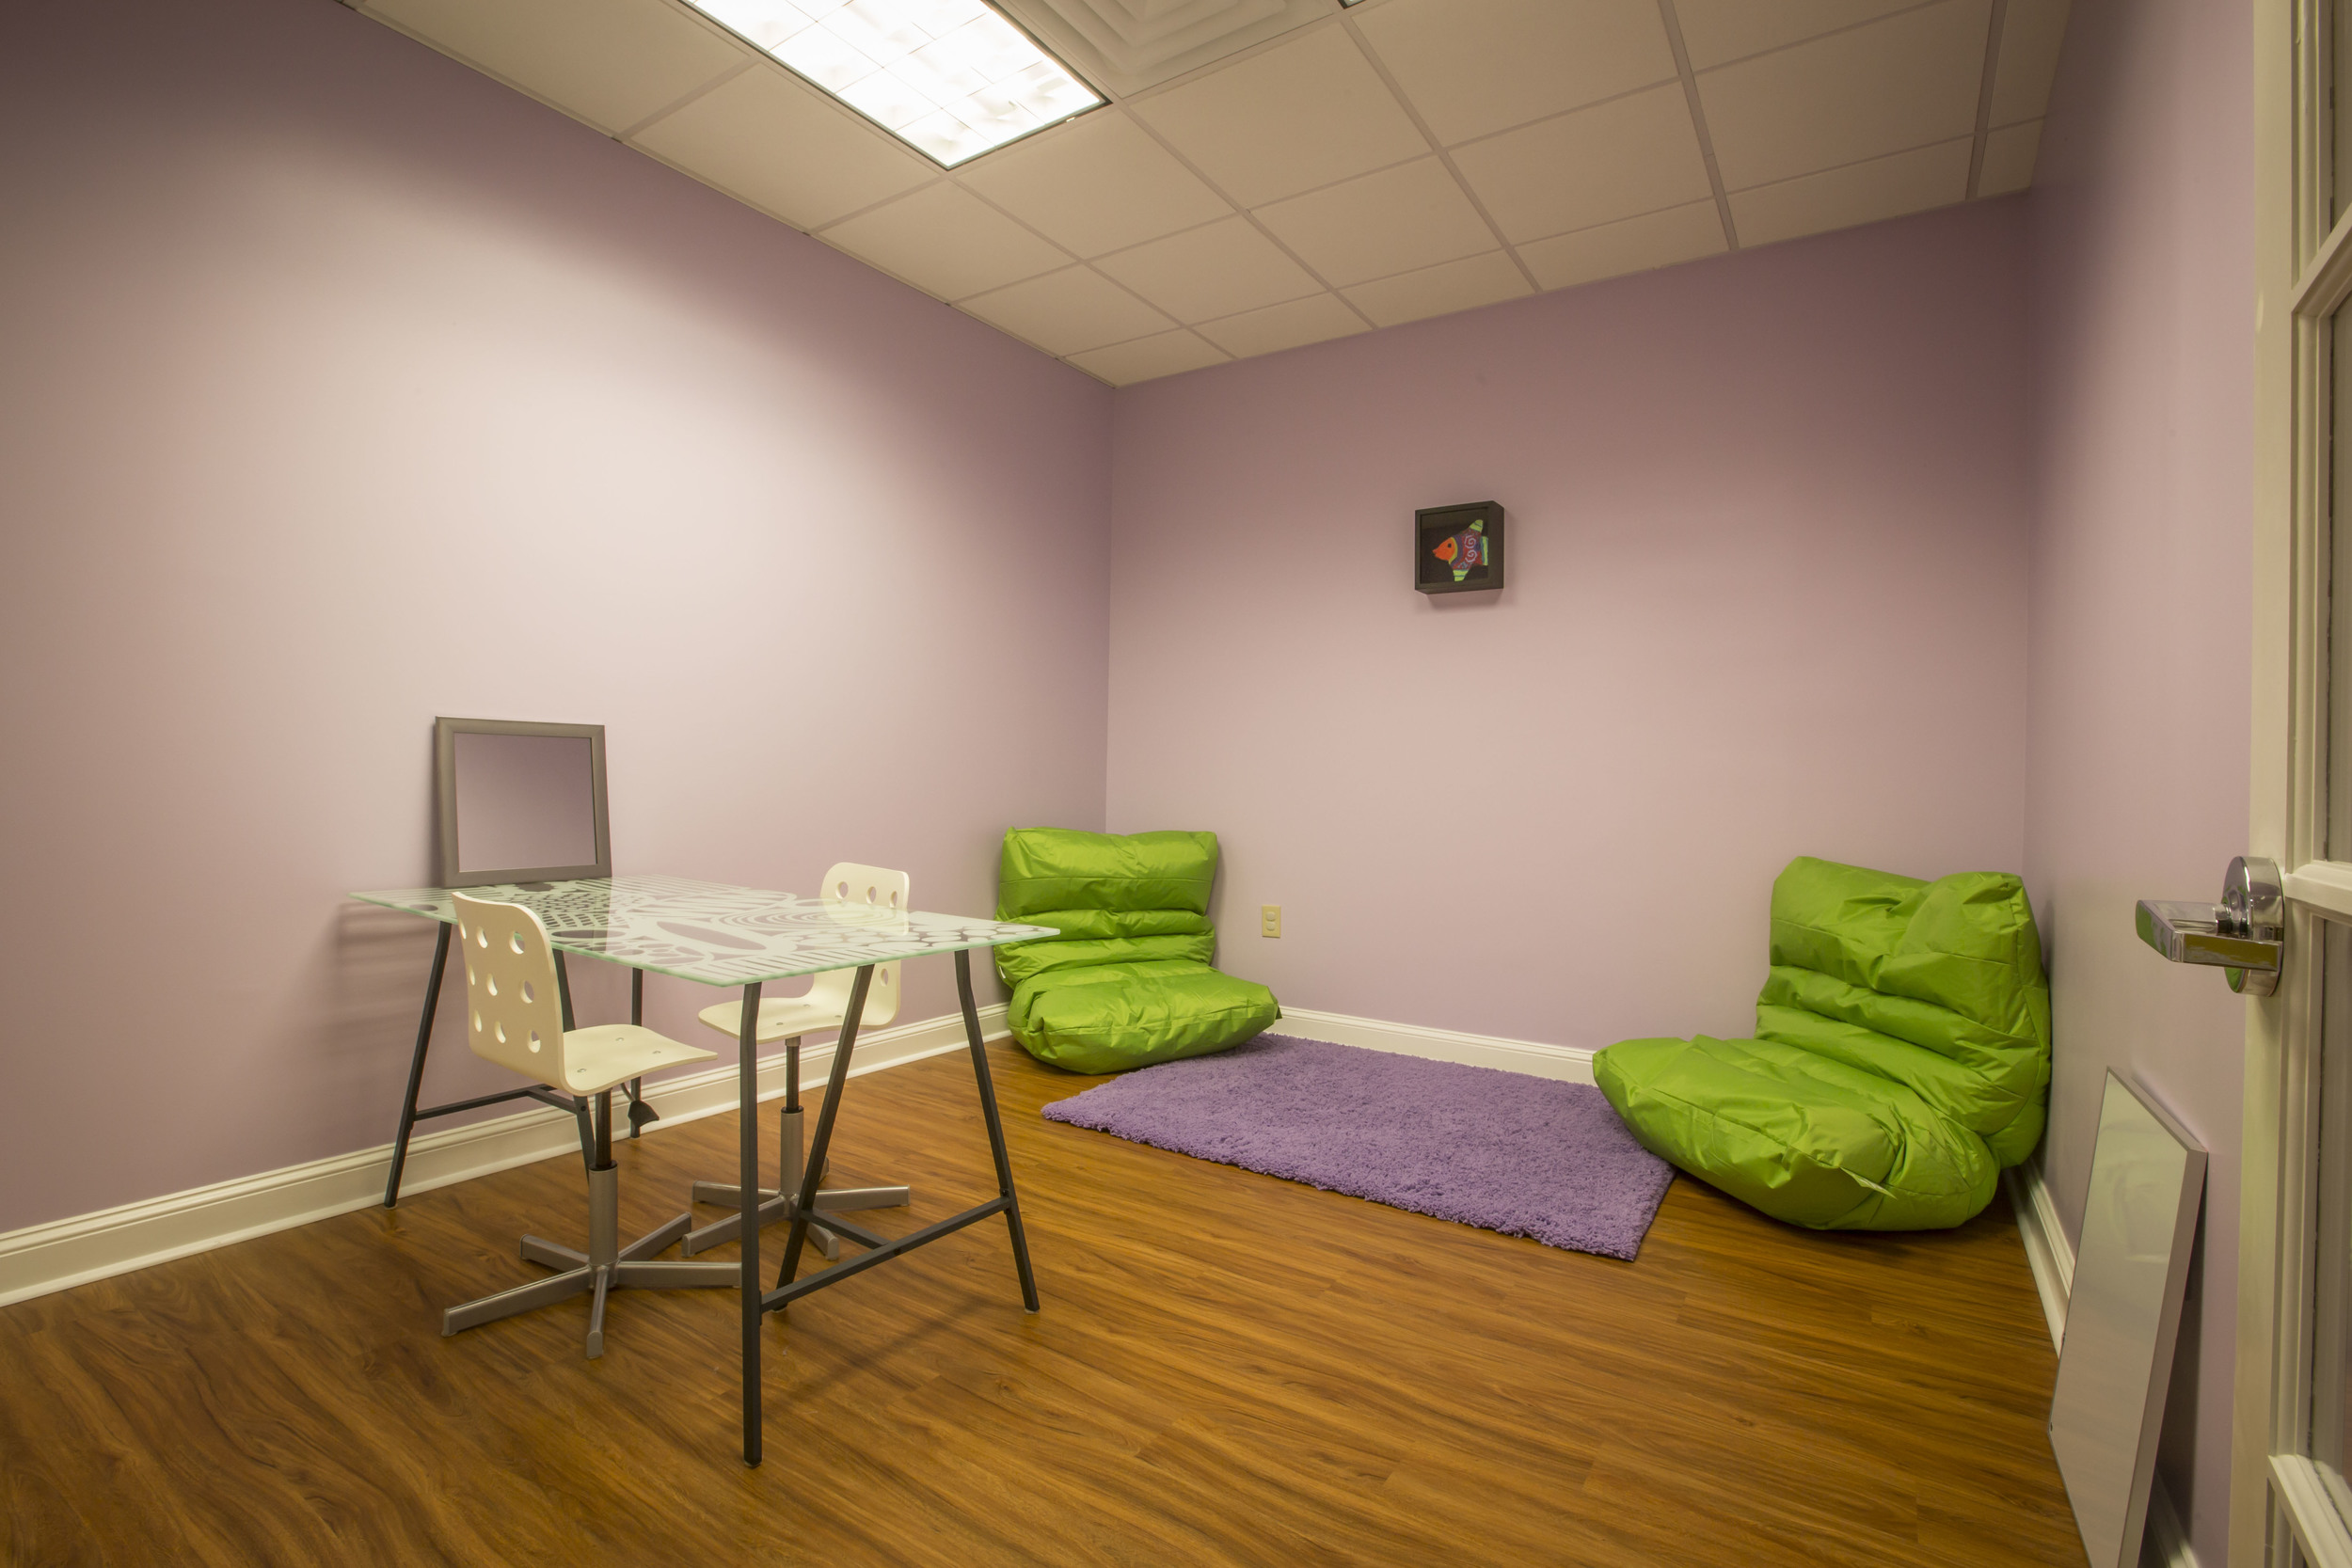 Our therapy rooms are designed to be relaxing and engaging so your child can focus on progressing and achieving their goals.